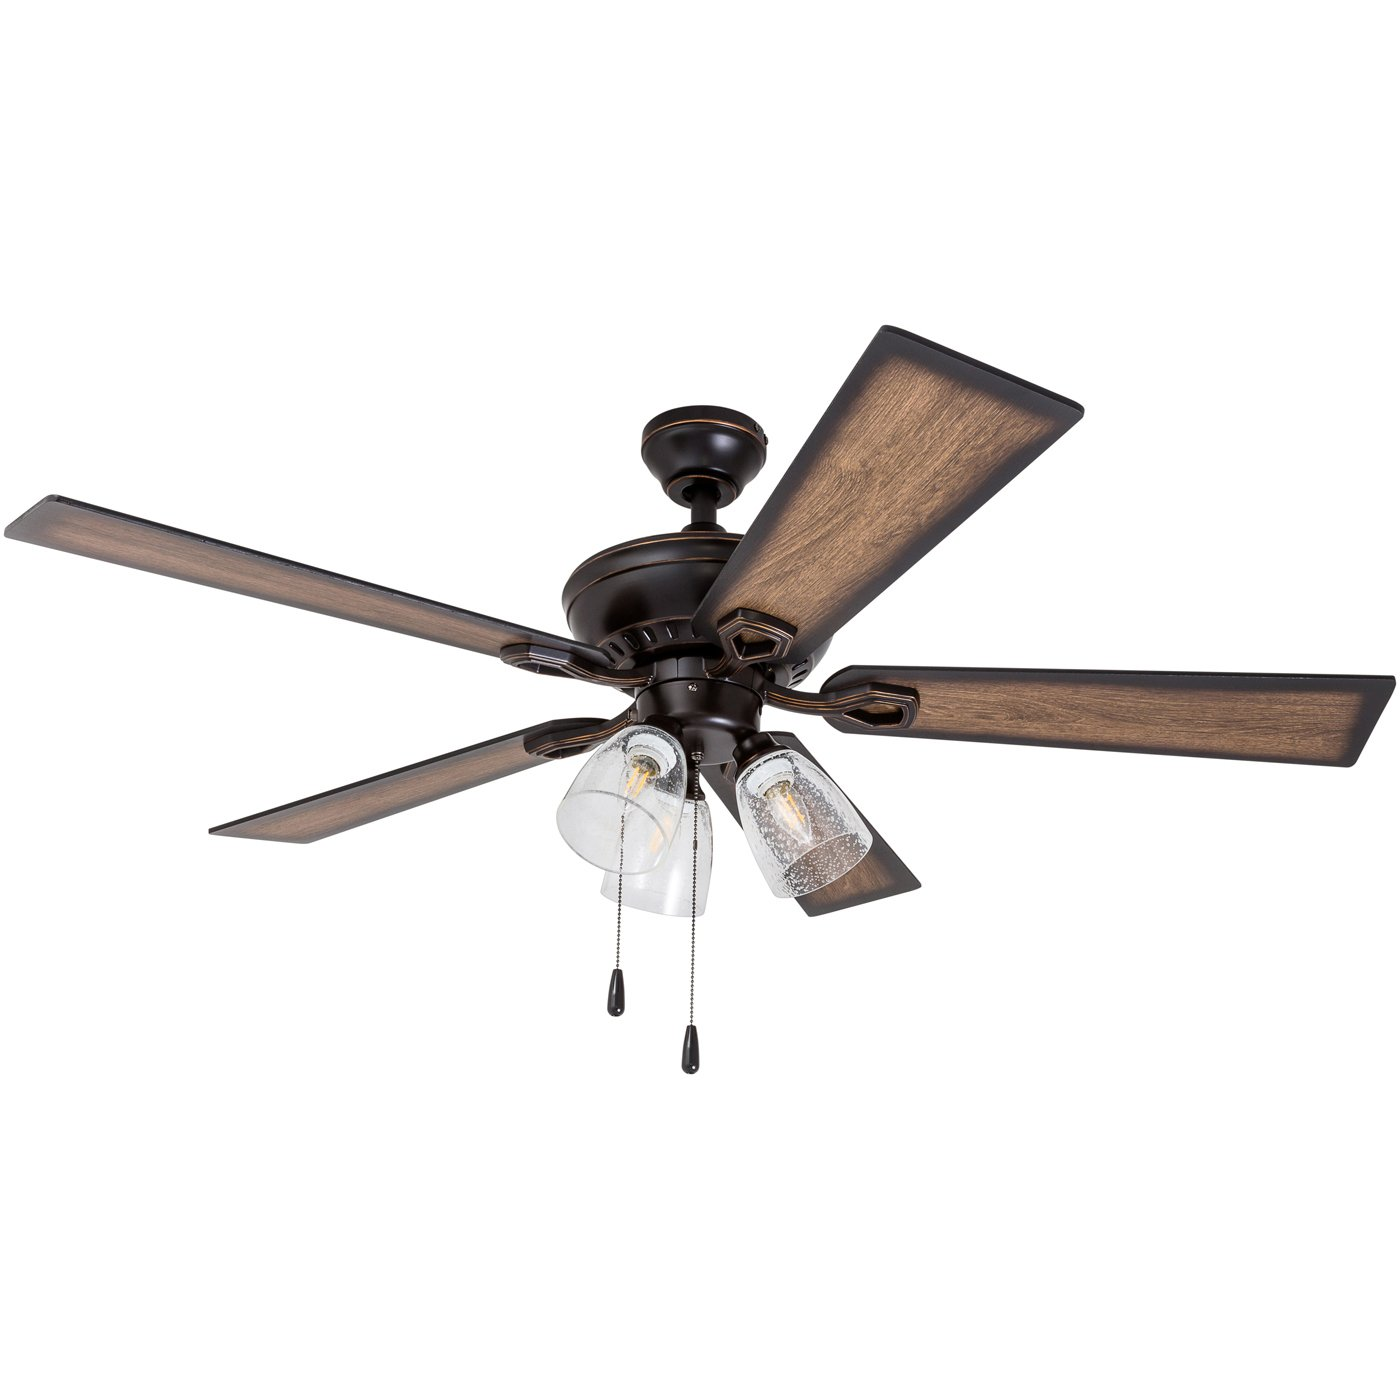 Prominence Home 40278-01 Glenmont Barnwood Blades, Rustic, Contemporary LED Ceiling Fan, 52 inches, Bronze by Prominence Home